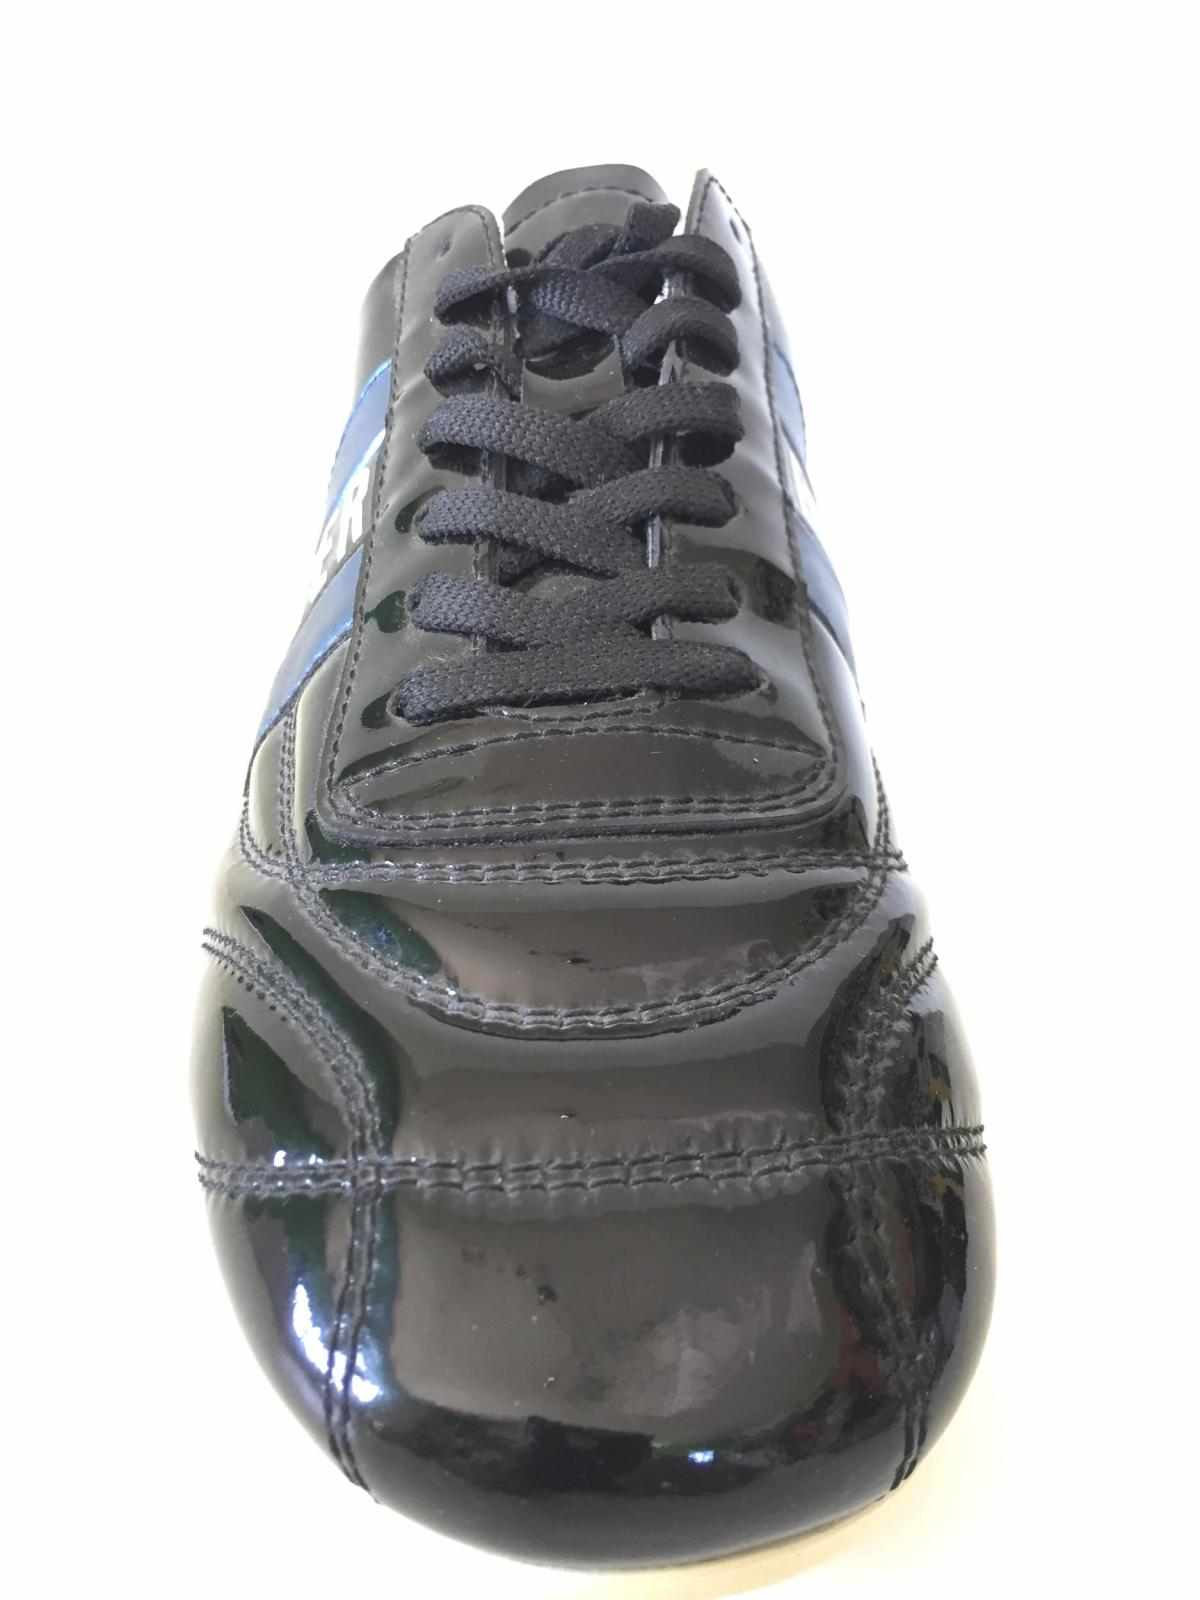 Details about Men Shoes Sneakers BIKKEMBERGS bke101050 Soccer Leather Black Blue to New show original title